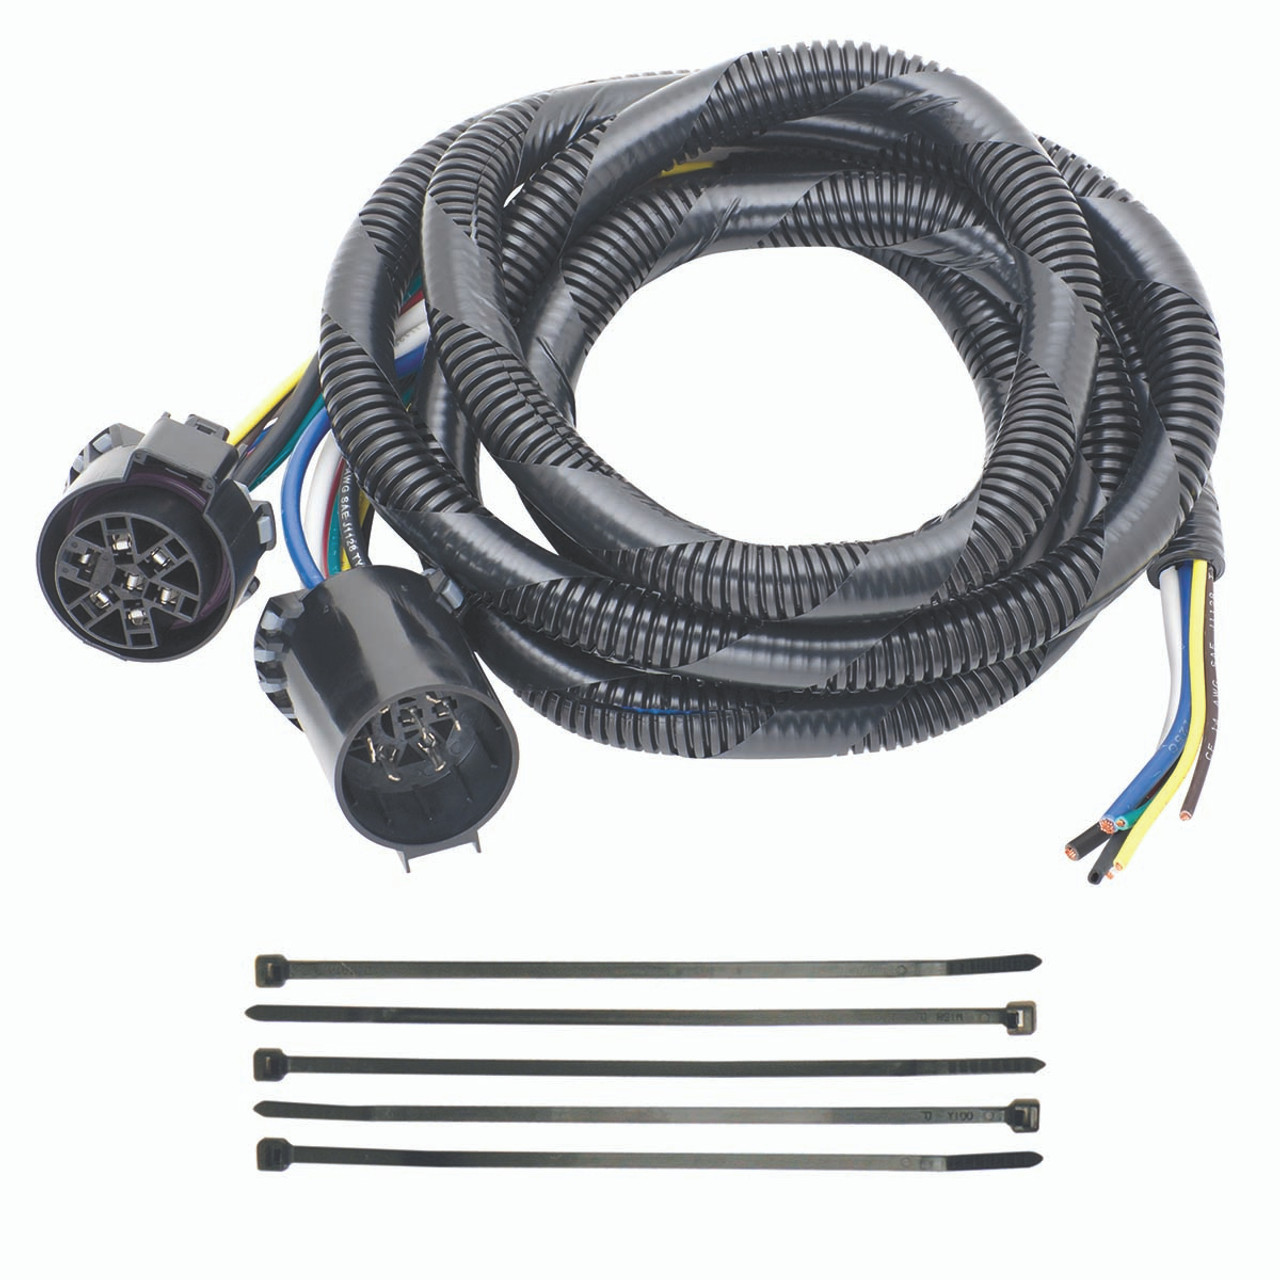 20140 5th wheel adapter harness 7 way flat pin u s car connector assembly 7 with pigtail croft trailer supply [ 1200 x 1200 Pixel ]